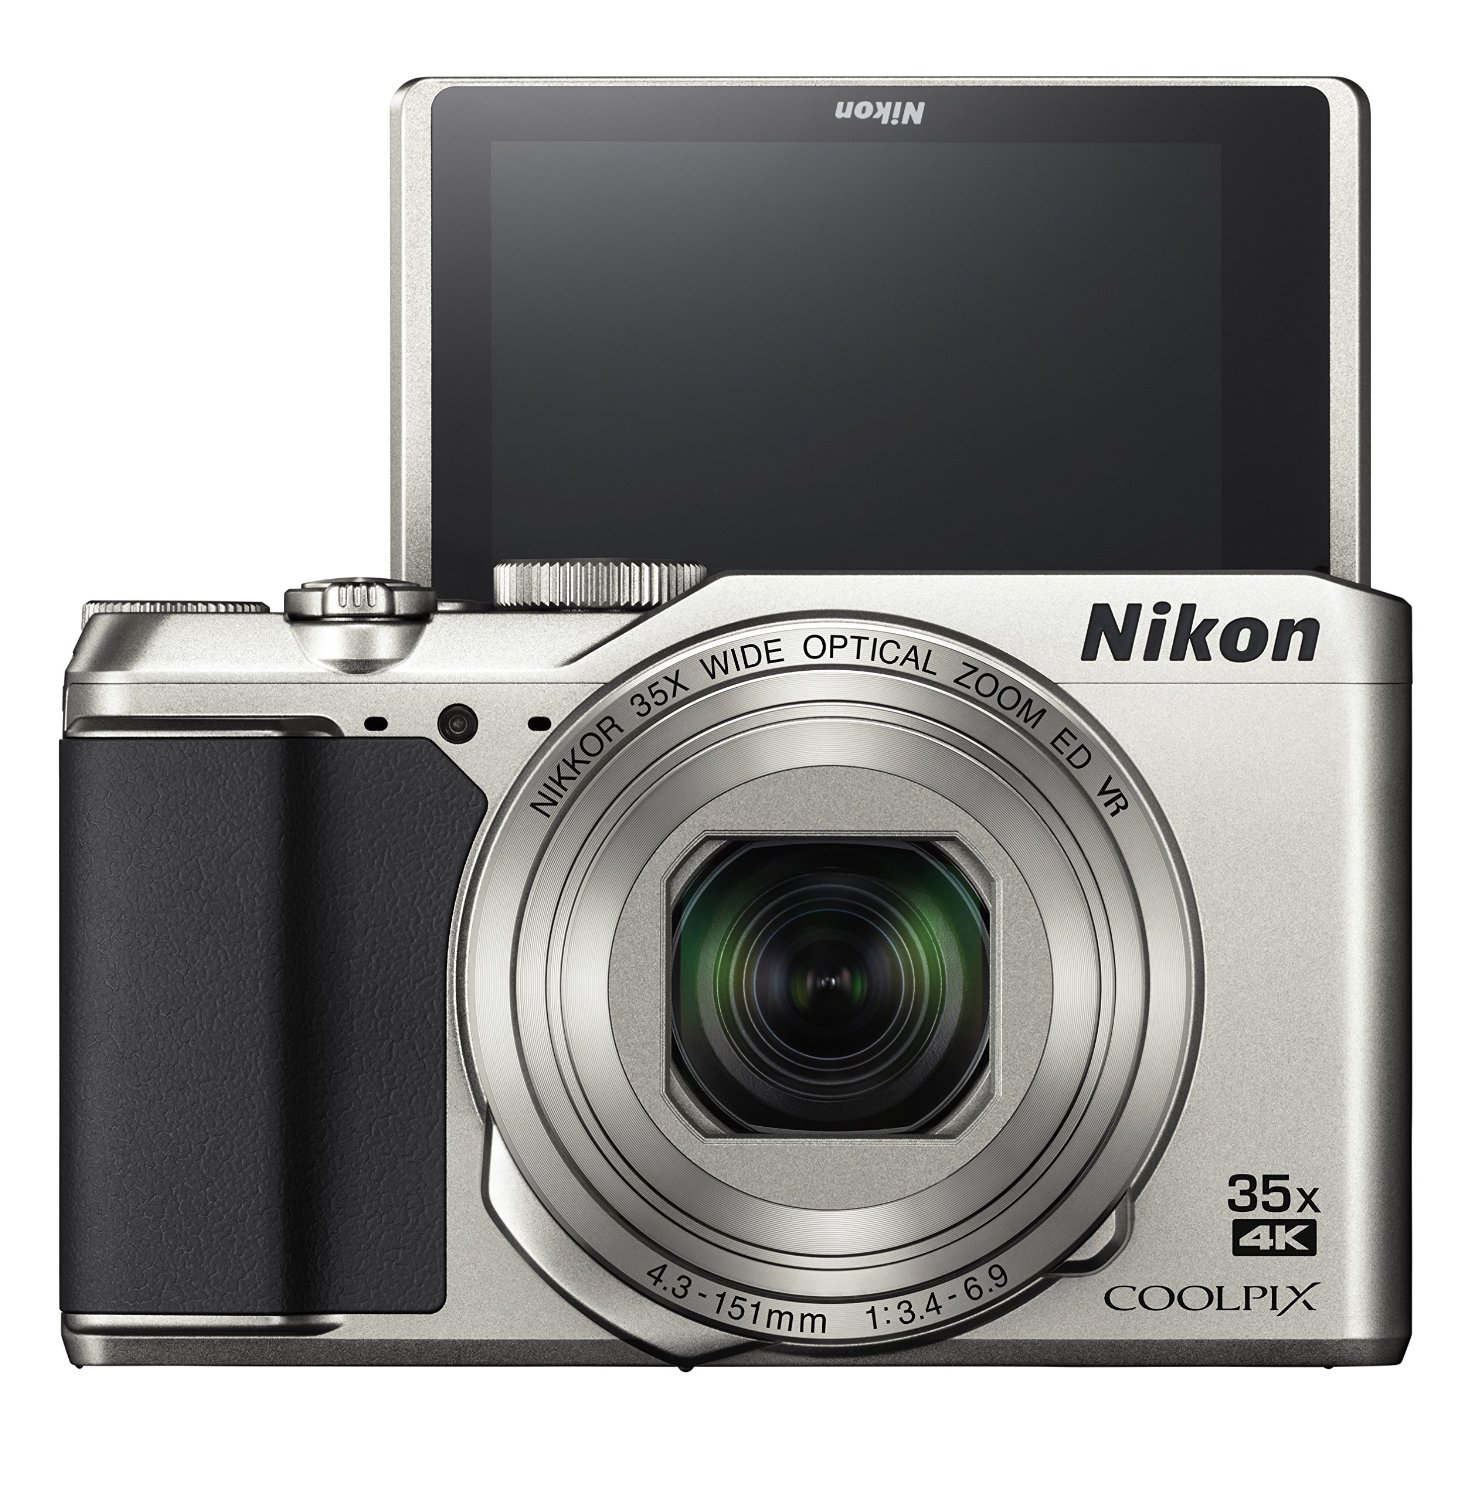 nikon nikon coolpix a900 argent appareil photo compac photovideopascher. Black Bedroom Furniture Sets. Home Design Ideas